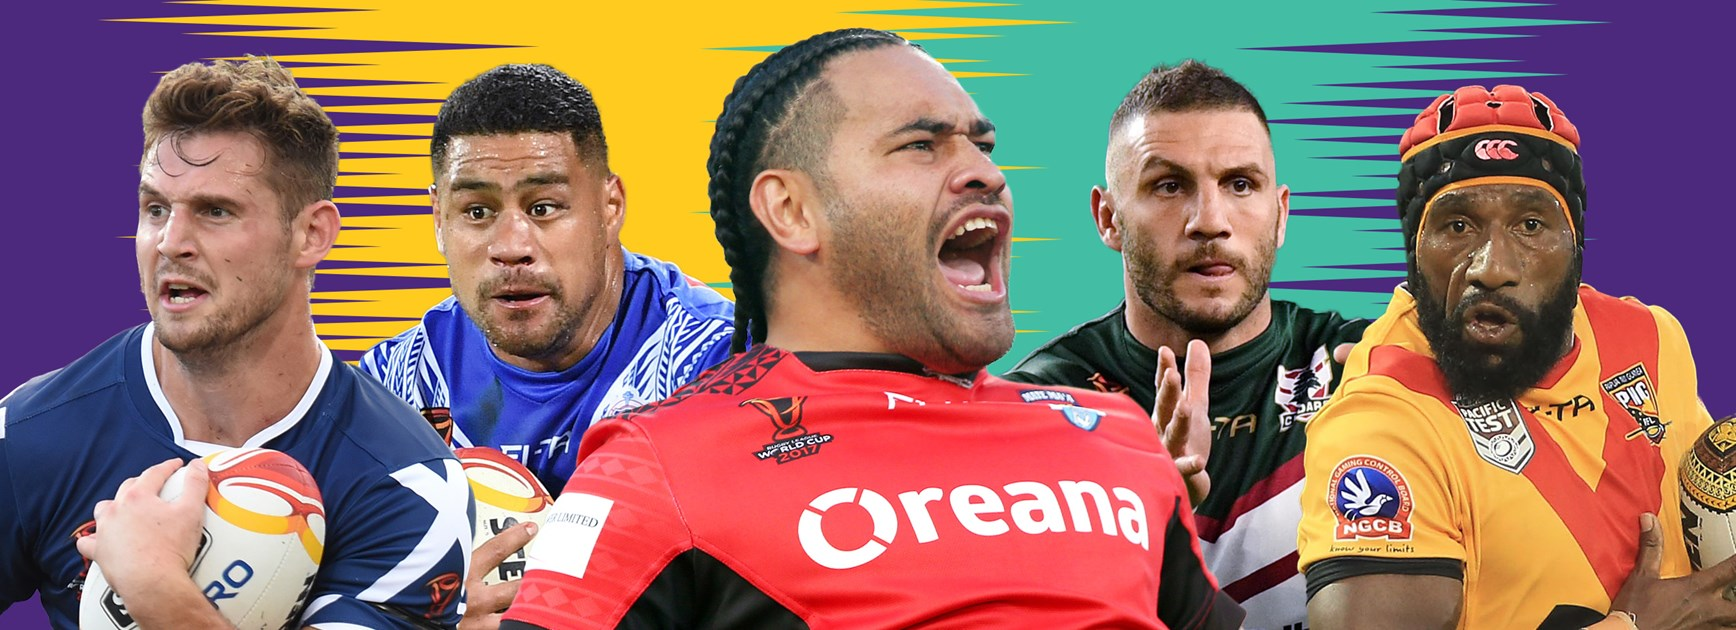 Magic, a Nines circuit and repaying Taumalolo: New events growing the game